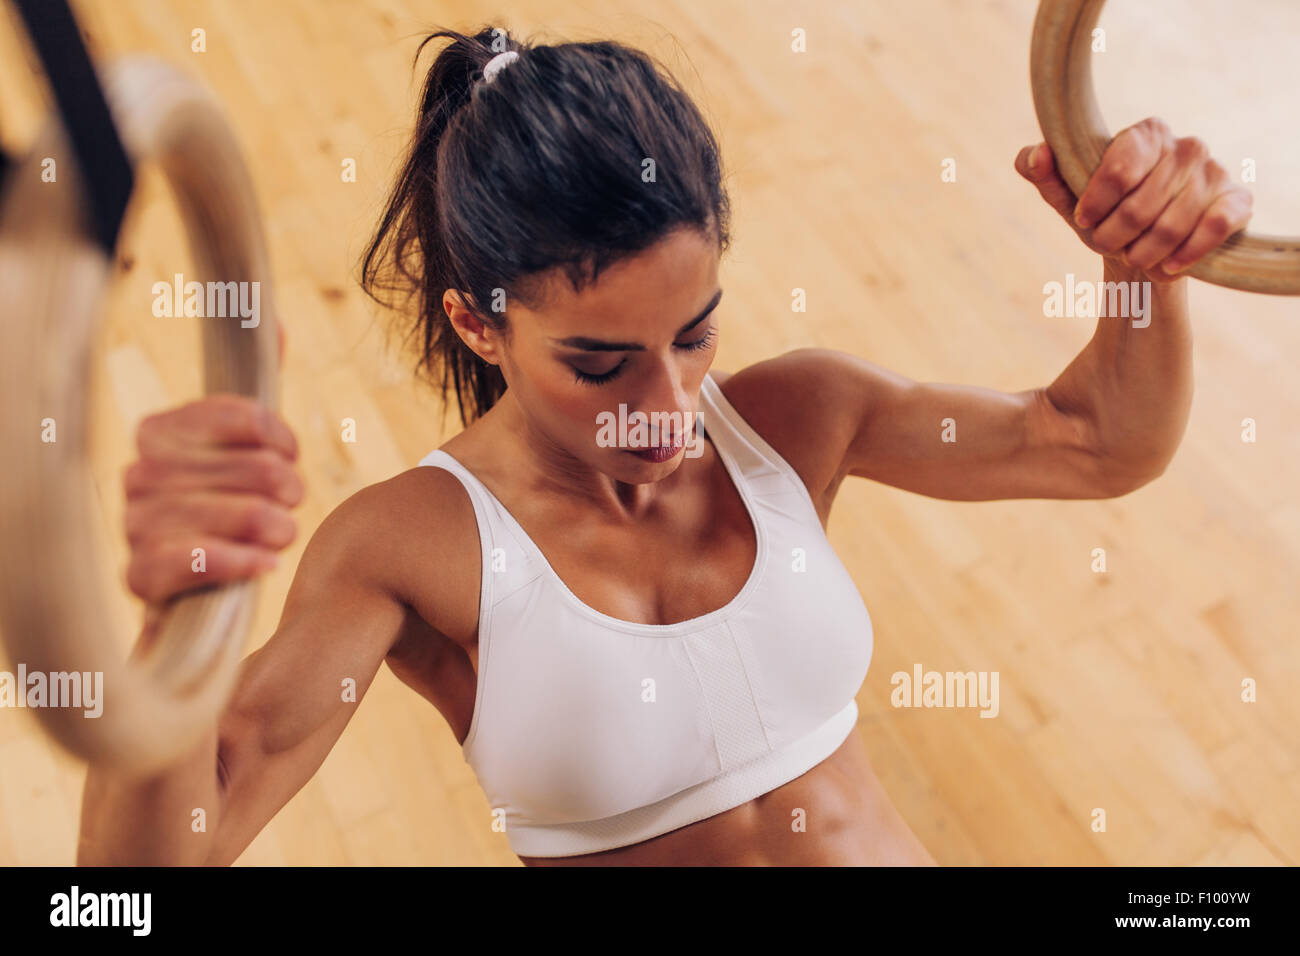 Image of strong young woman doing pull-ups exercise using gymnastic rings at gym. - Stock Image